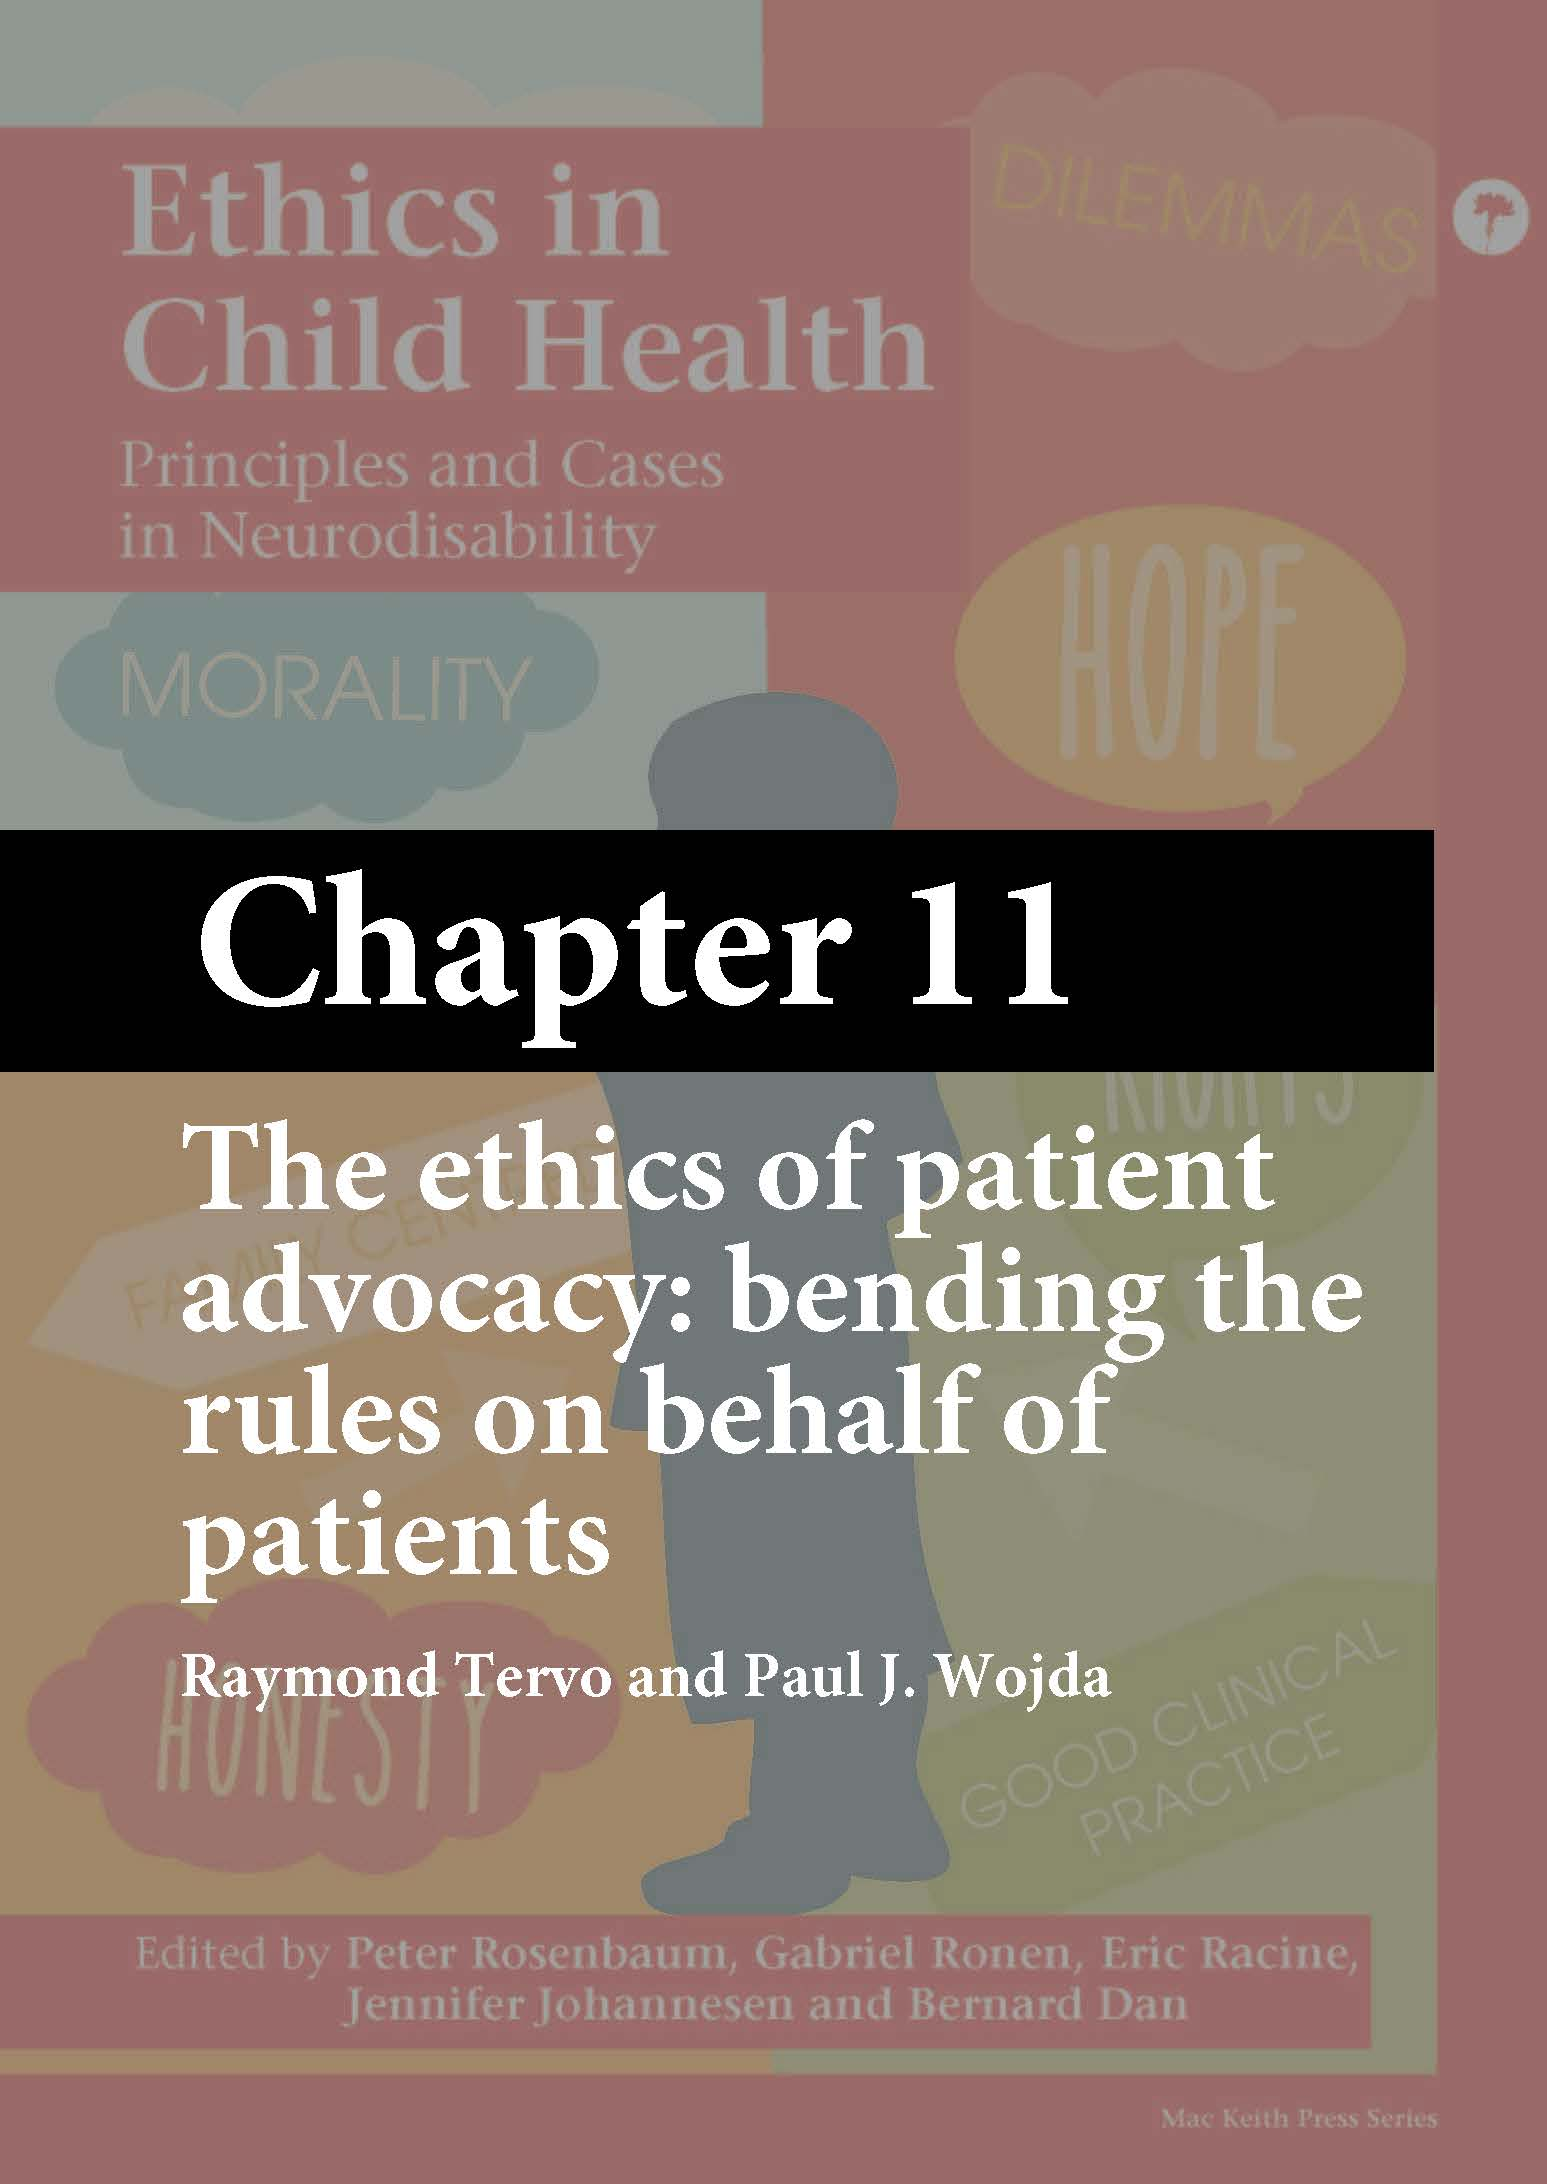 Ethics in Child Health, Rosenbaum, Chapter 11 cover